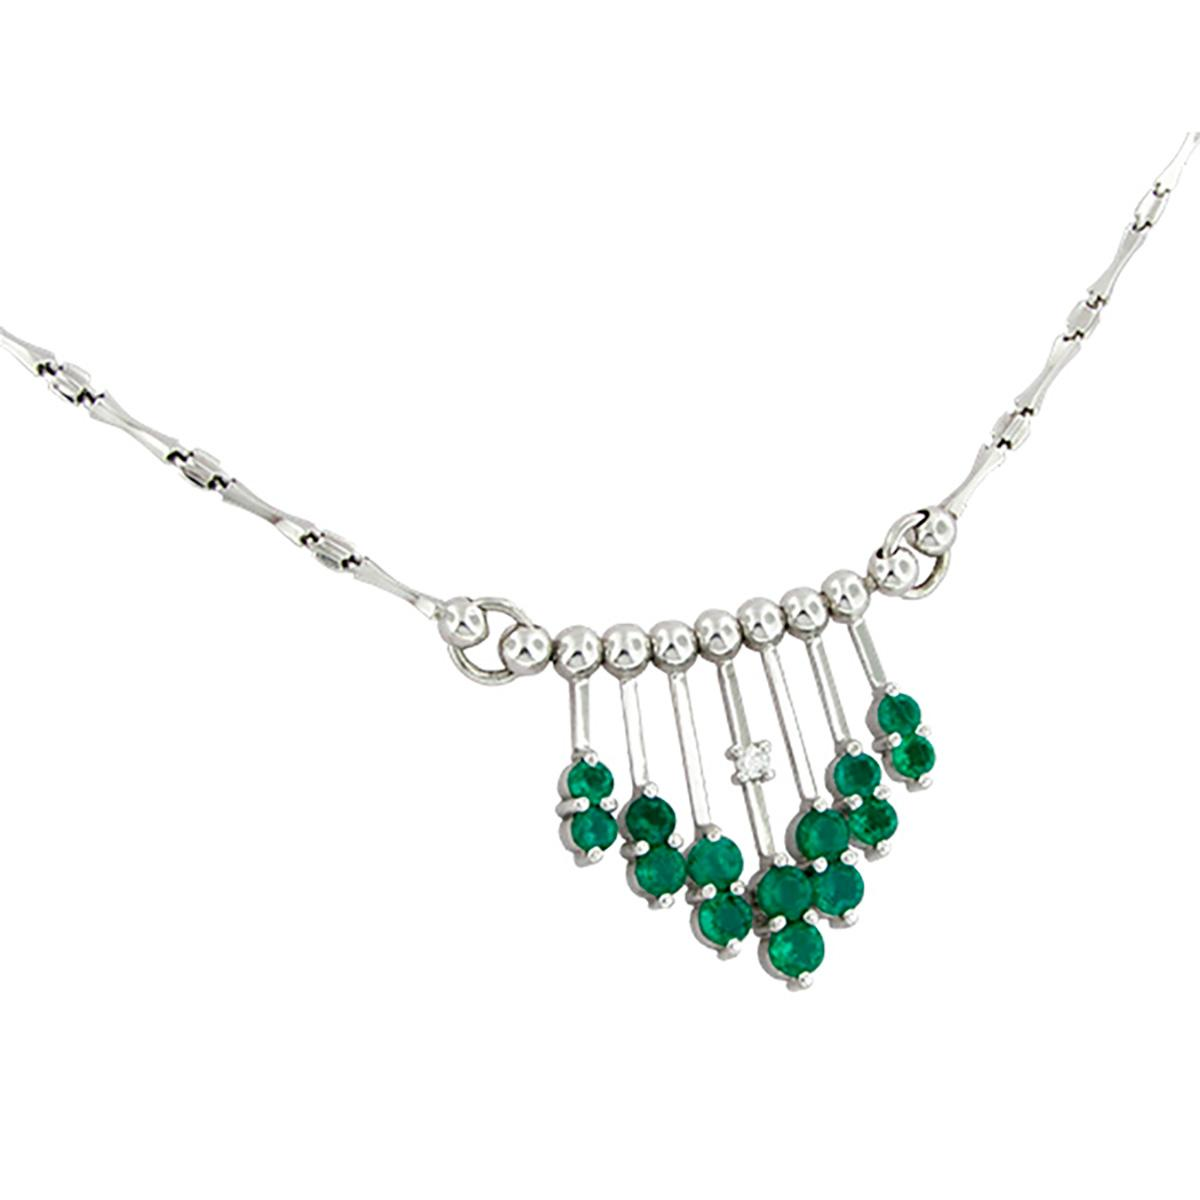 emerald-and-diamond-necklace-in-18k-white-gold-with-round-emeralds-and-diamonds